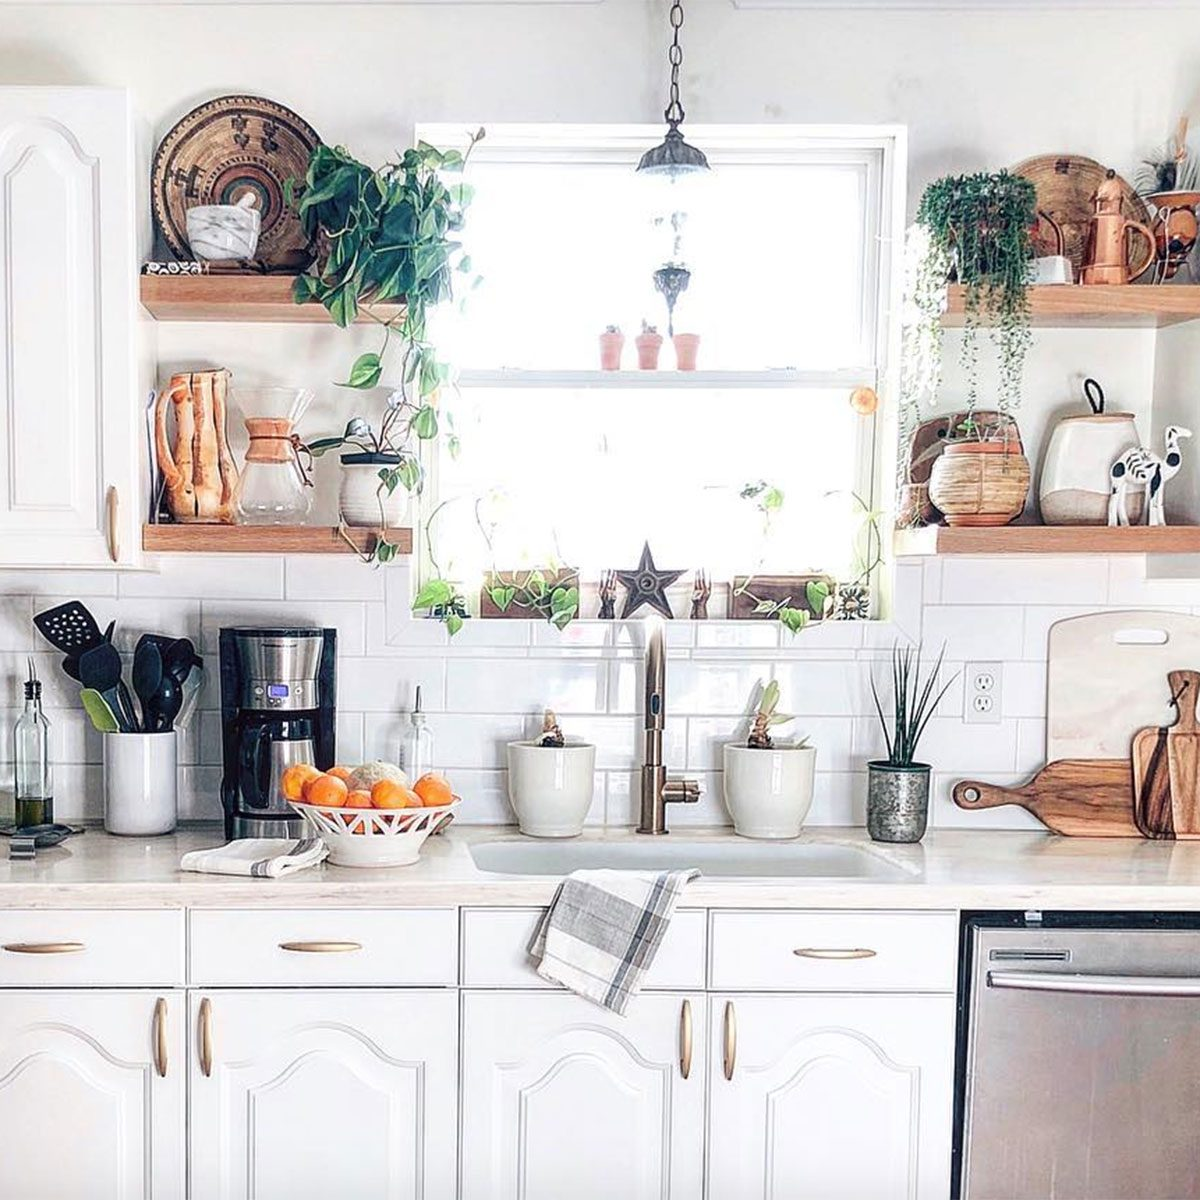 12 Kitchen Design Ideas Based On Your Zodiac Sign | Taste of